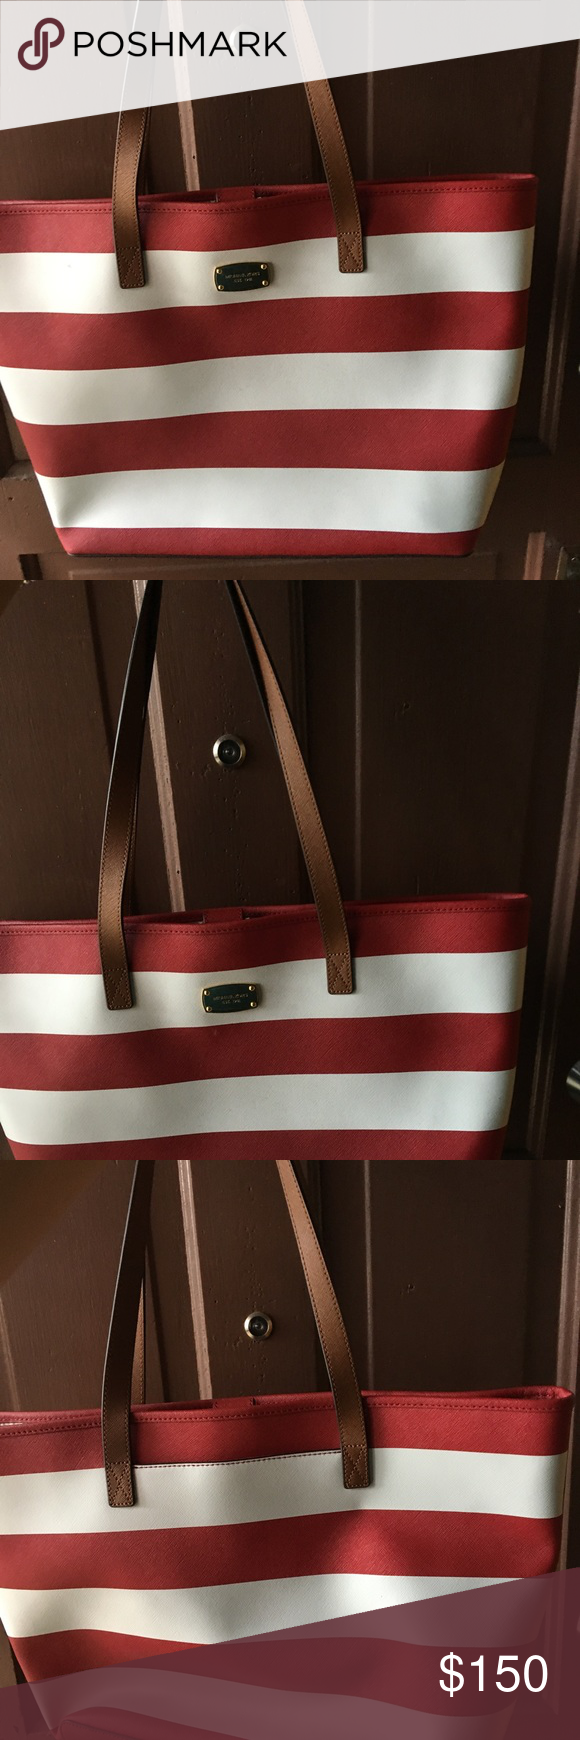 2f54032ee44f New Michael Kors Striped Tote -Real saffiano leather, striped interior, logo  plaque; gold tone hardware. Never been used! Michael Kors Bags Totes